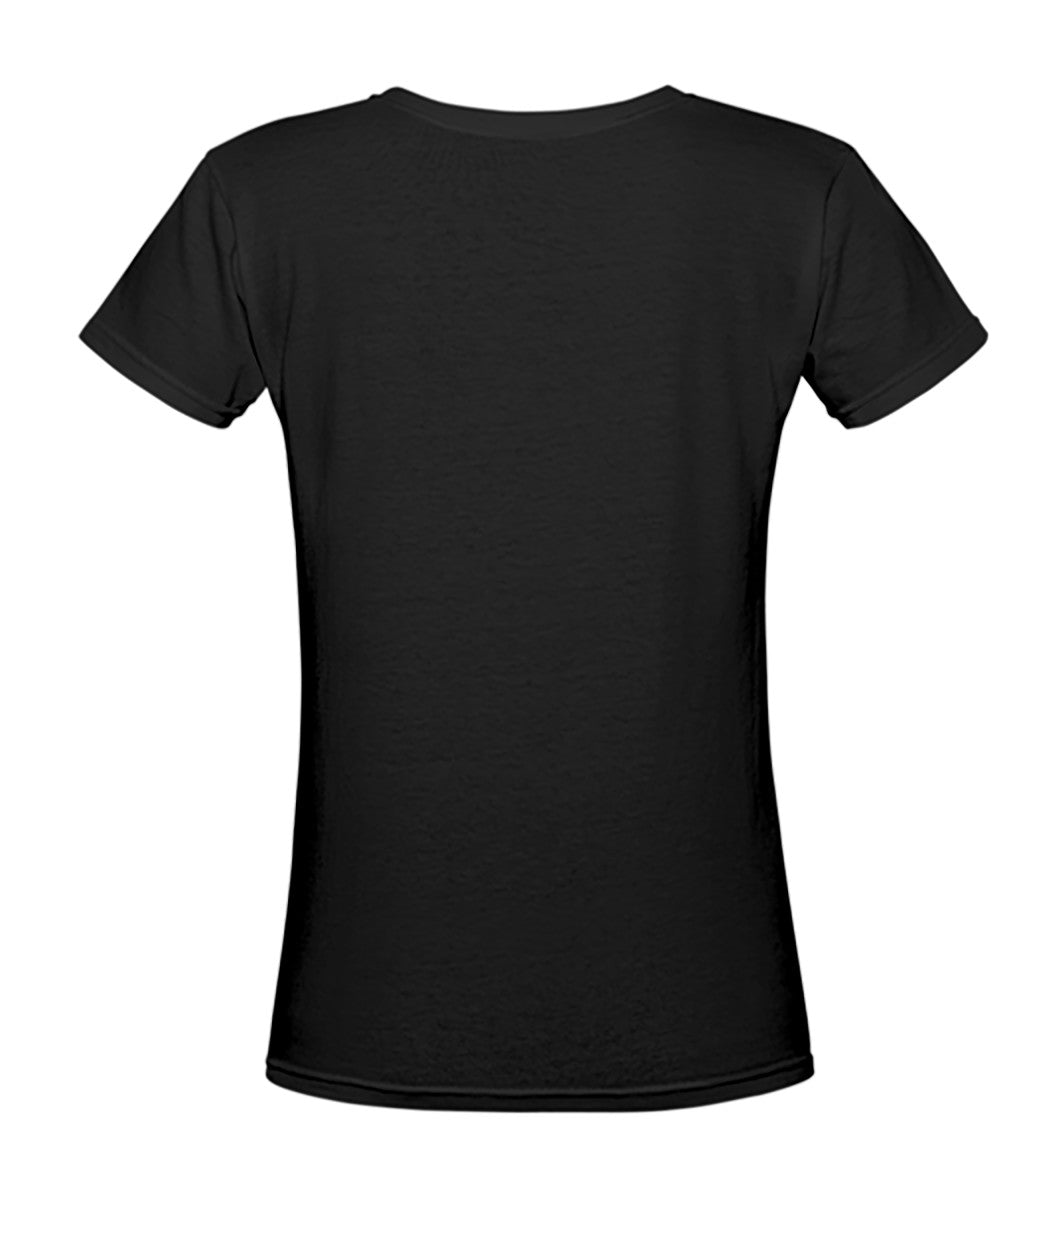 Black and Educated- PV Edition Women's V-Neck